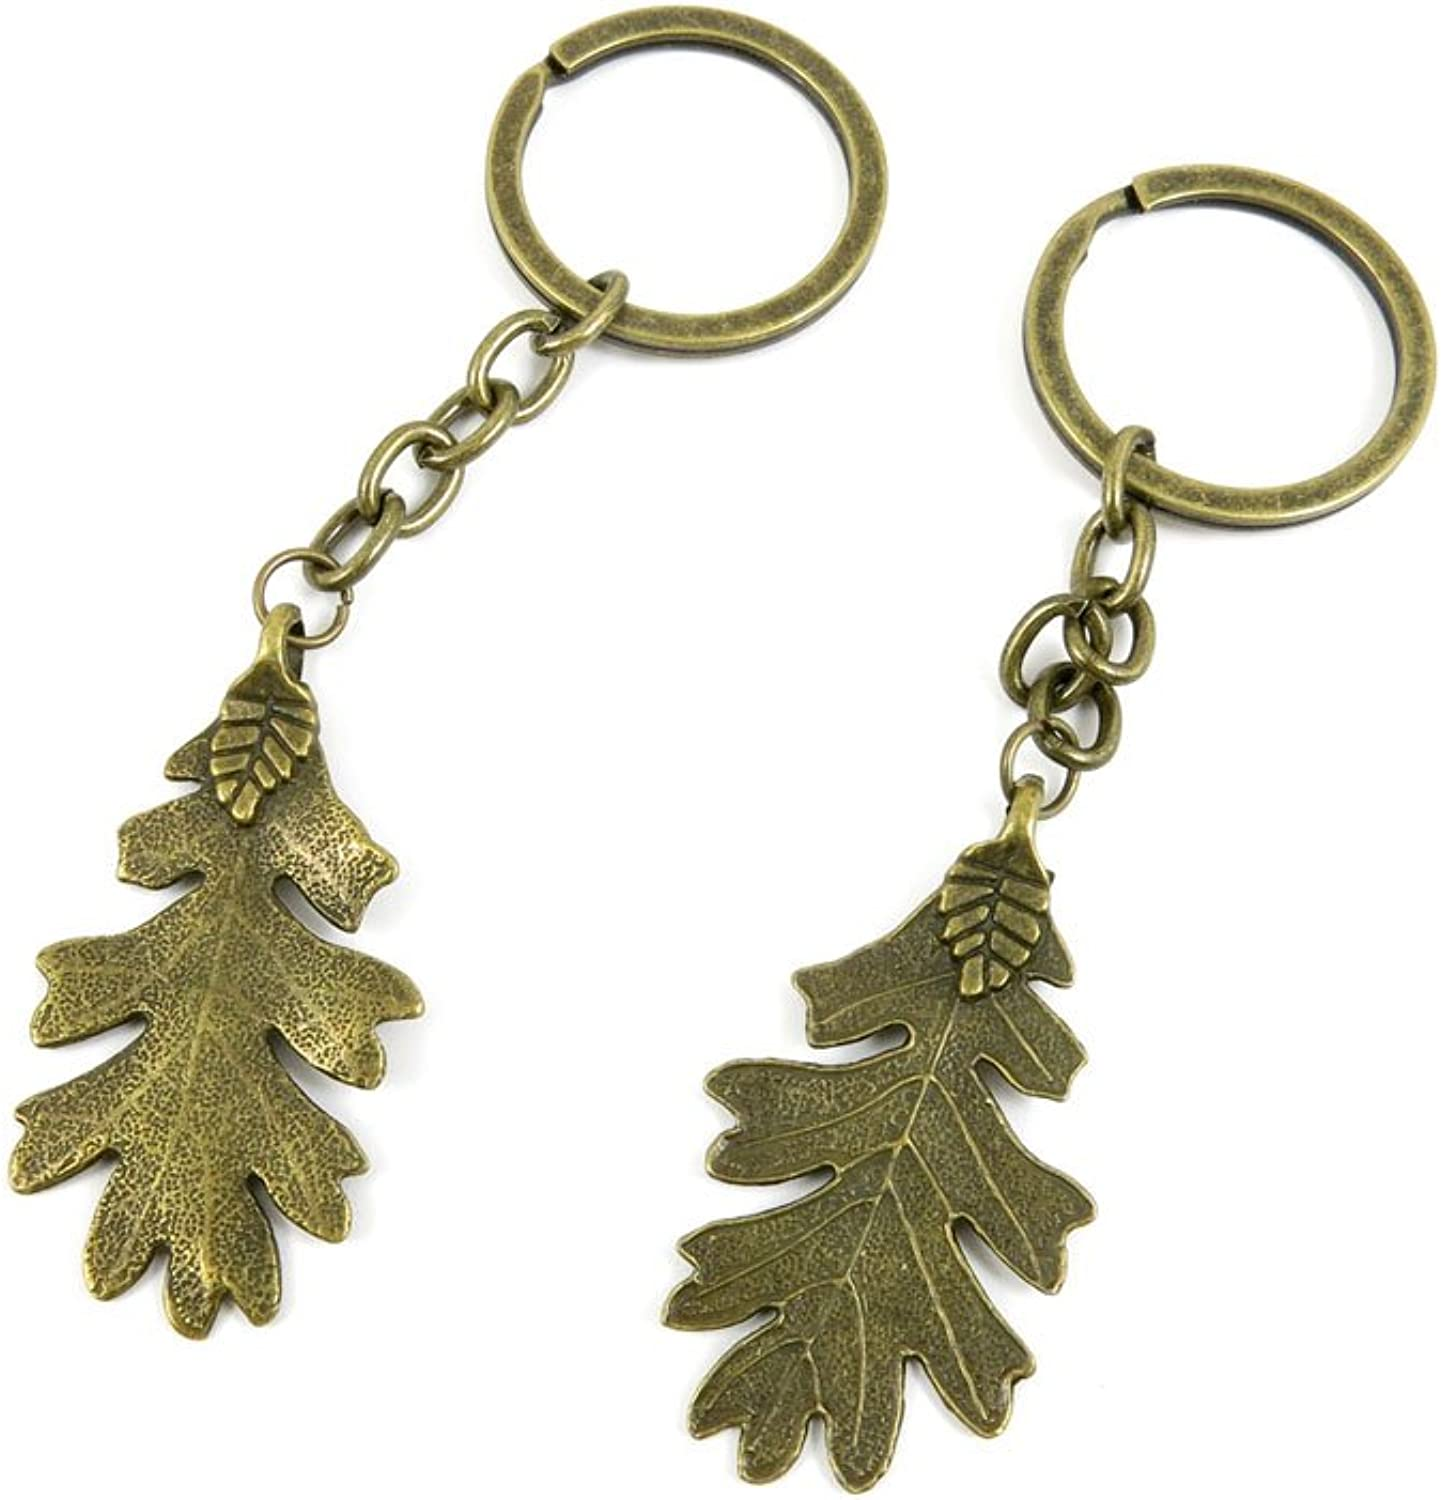 120 Pieces Fashion Jewelry Keyring Keychain Door Car Key Tag Ring Chain Supplier Supply Wholesale Bulk Lots T9GR7 Leaf Leaves